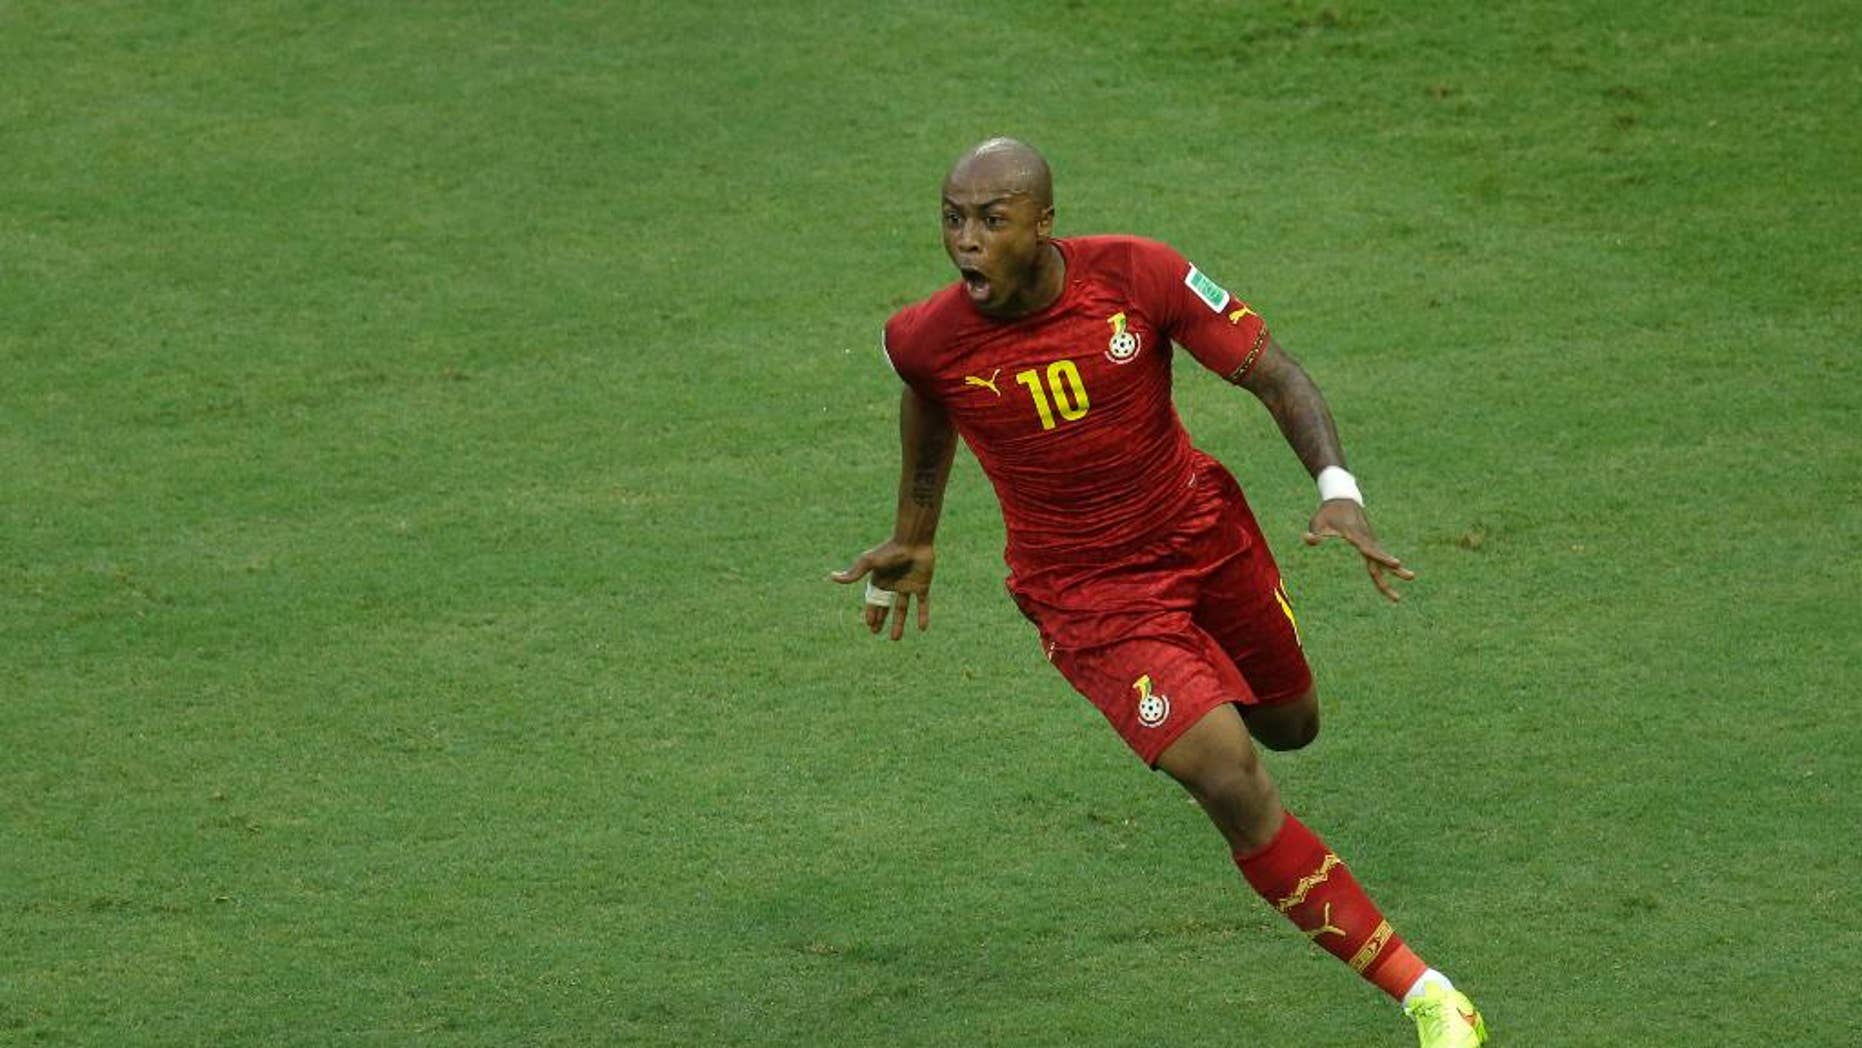 Ghana's Andre Ayew celebrates scoring his side's first goal during the group G World Cup soccer match between Germany and Ghana at the Arena Castelao in Fortaleza, Brazil, Saturday, June 21, 2014. (AP Photo/Themba Hadebe)